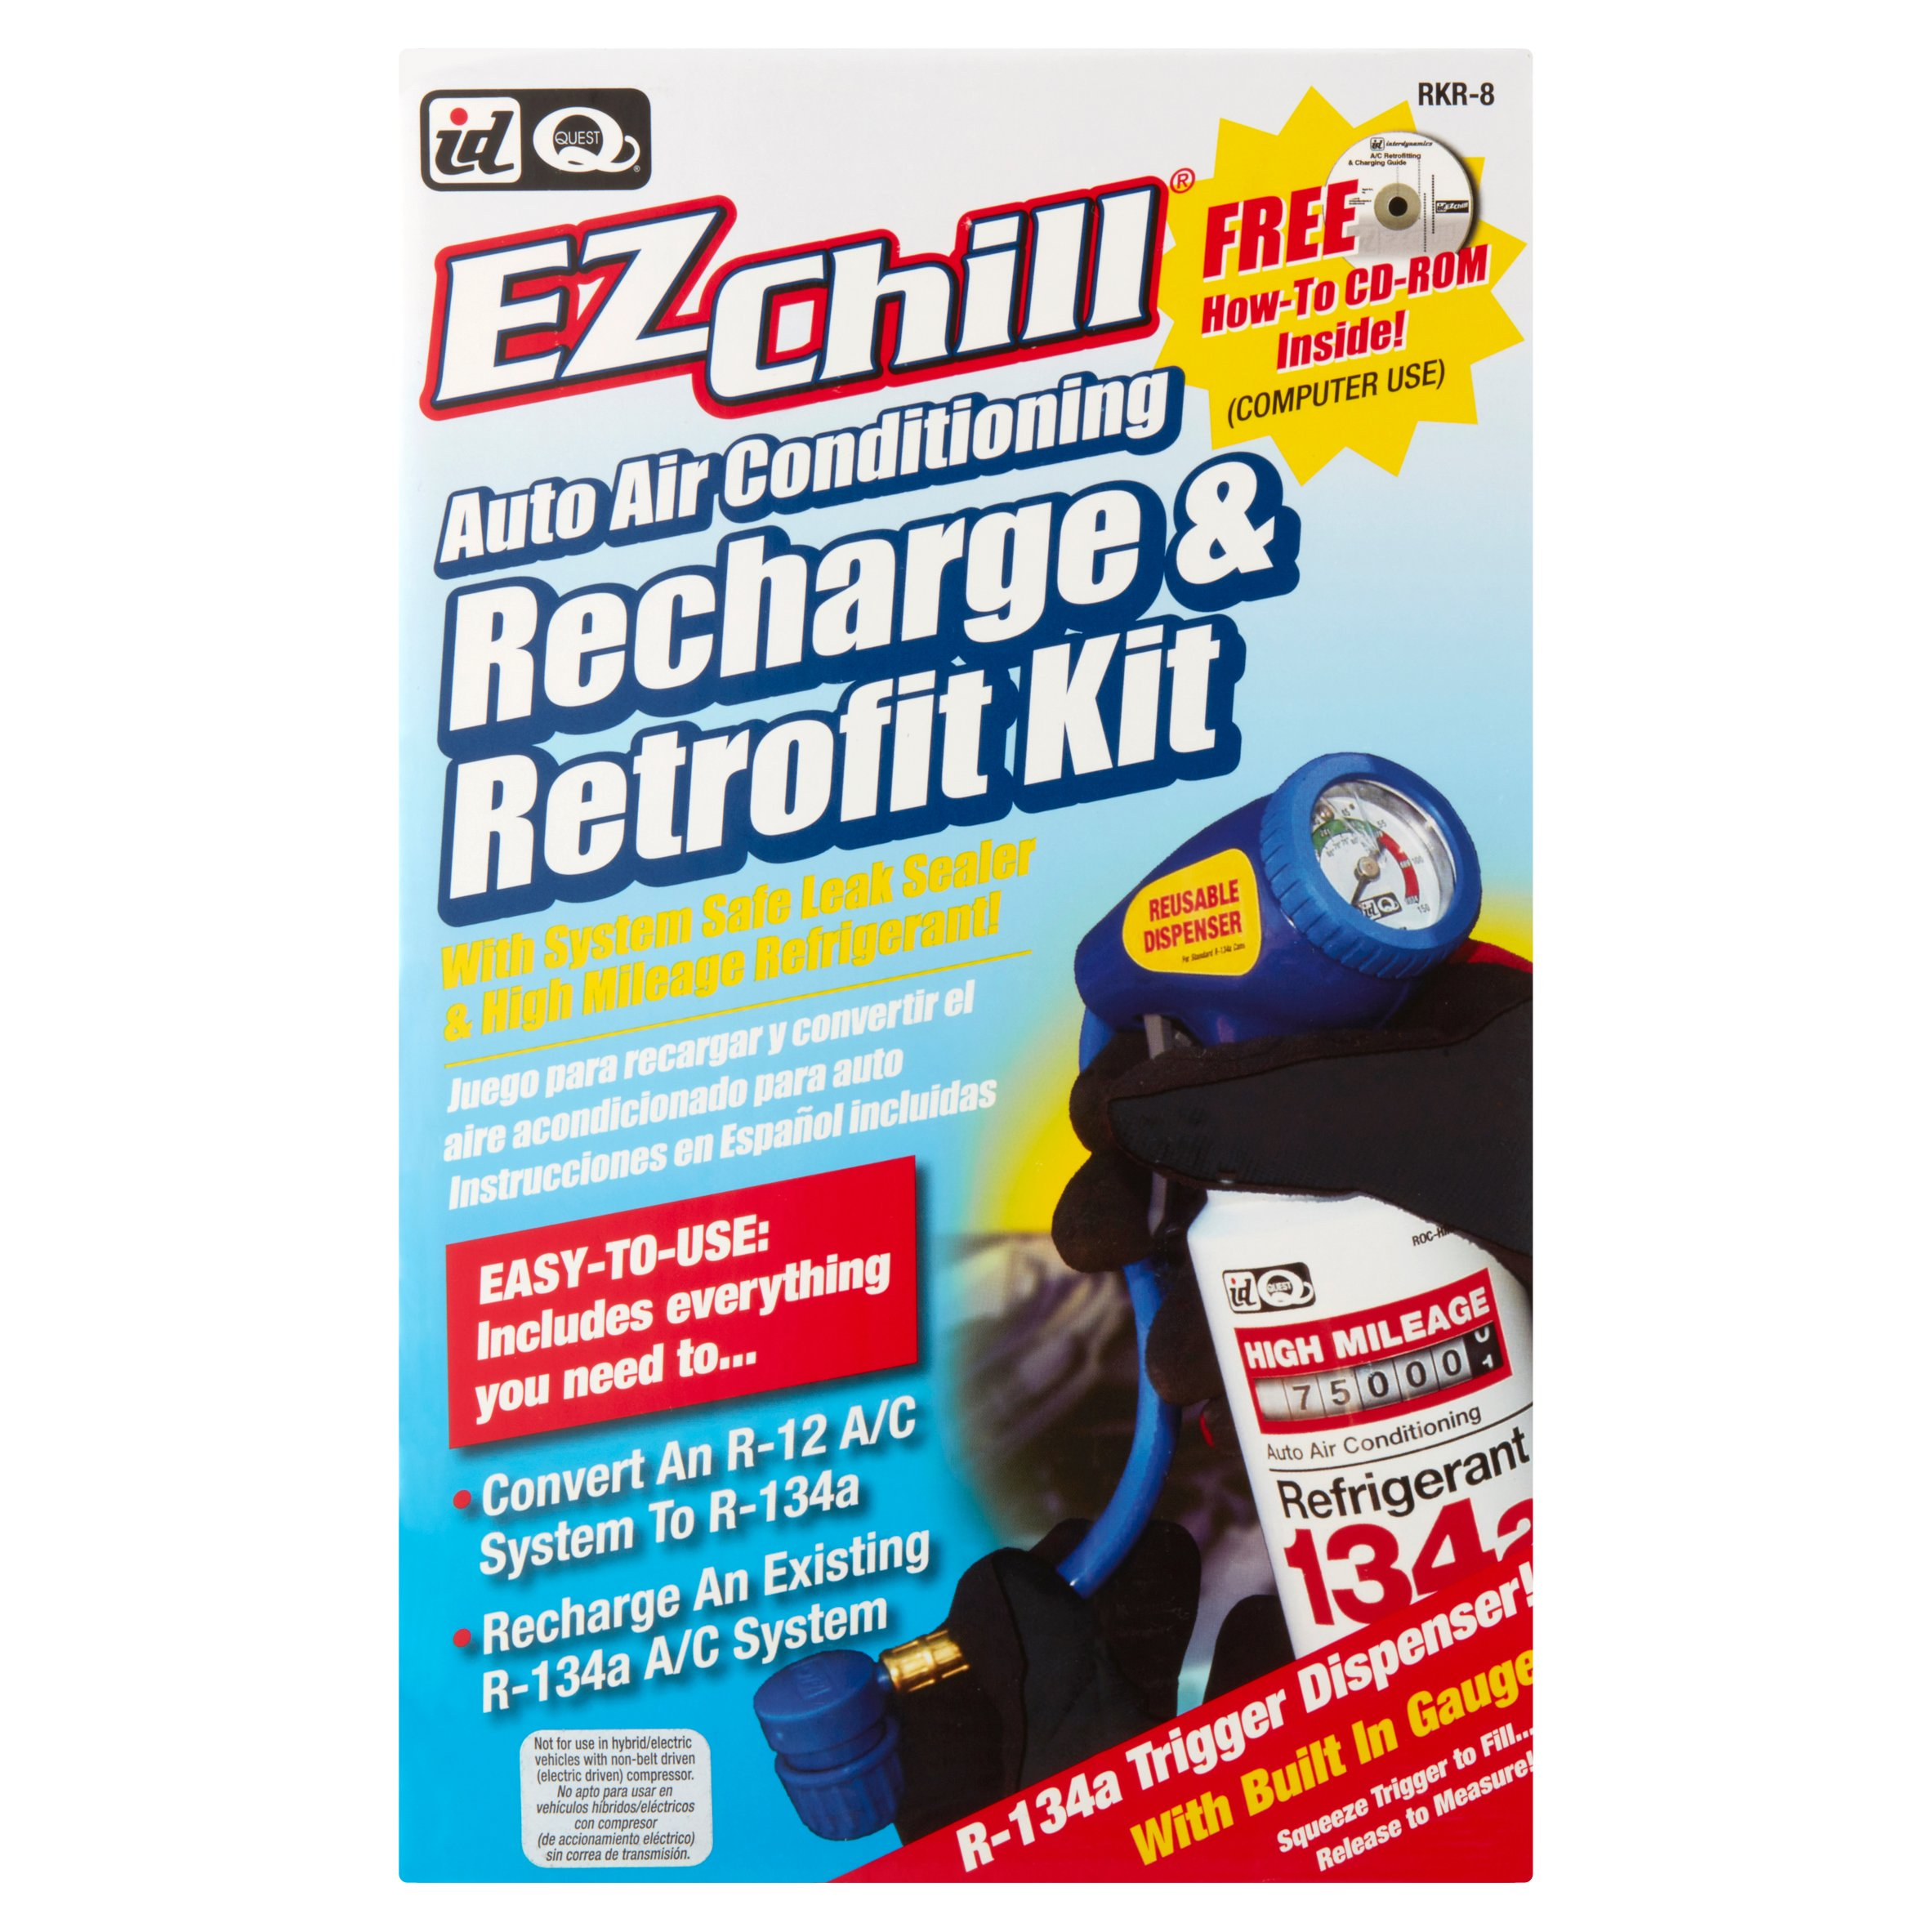 ID Quest EZChill Auto Air Conditioning Recharge & Retrofit